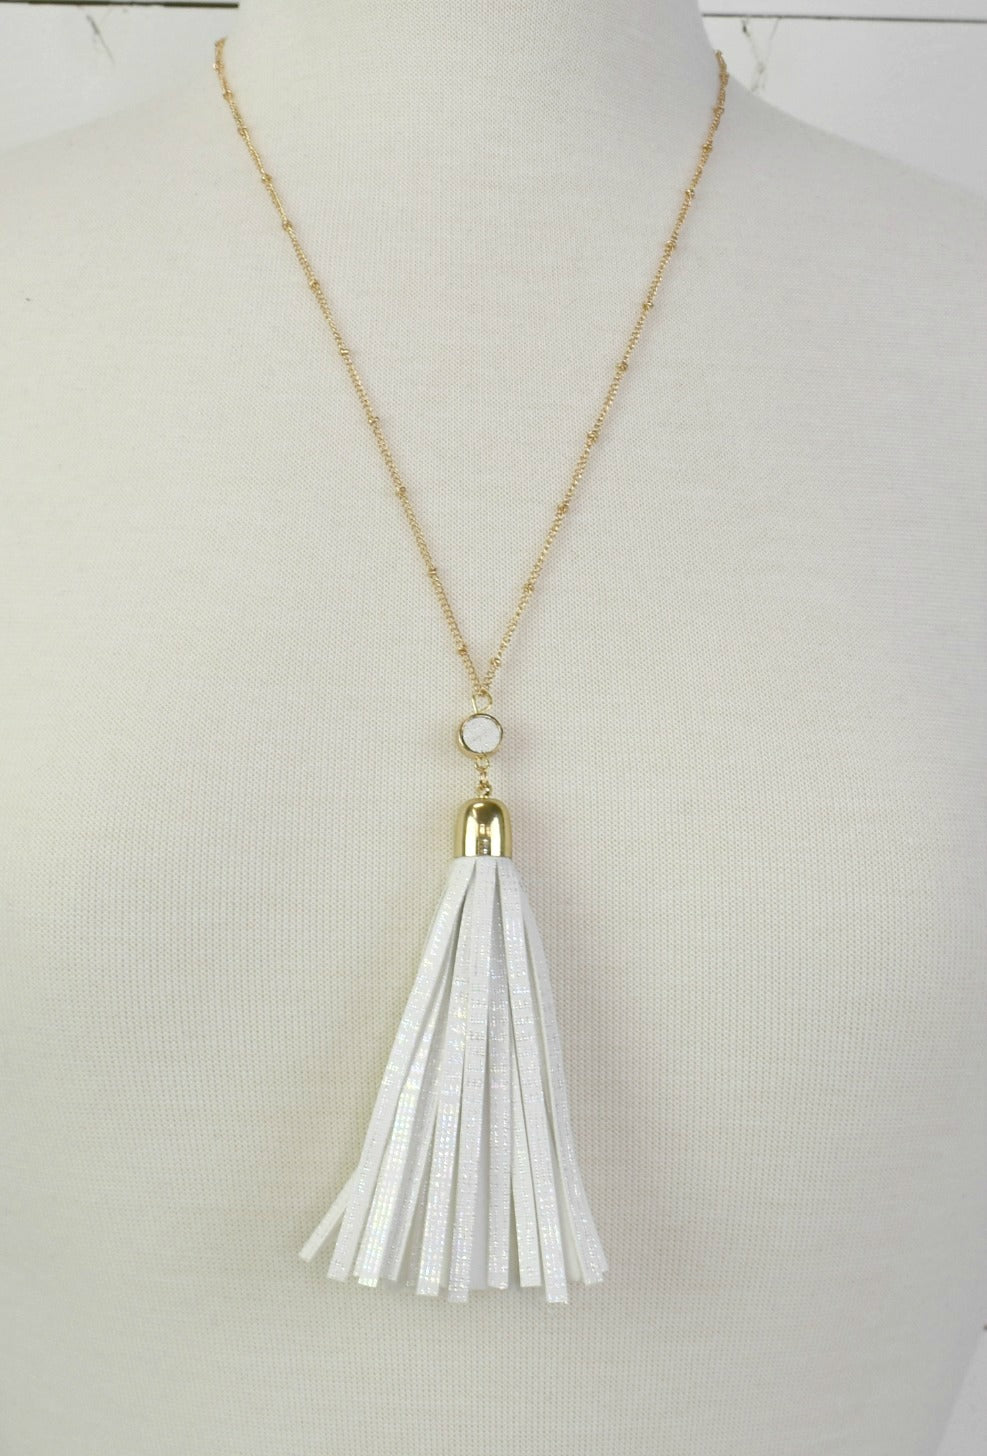 Fun Fringe Necklace - White